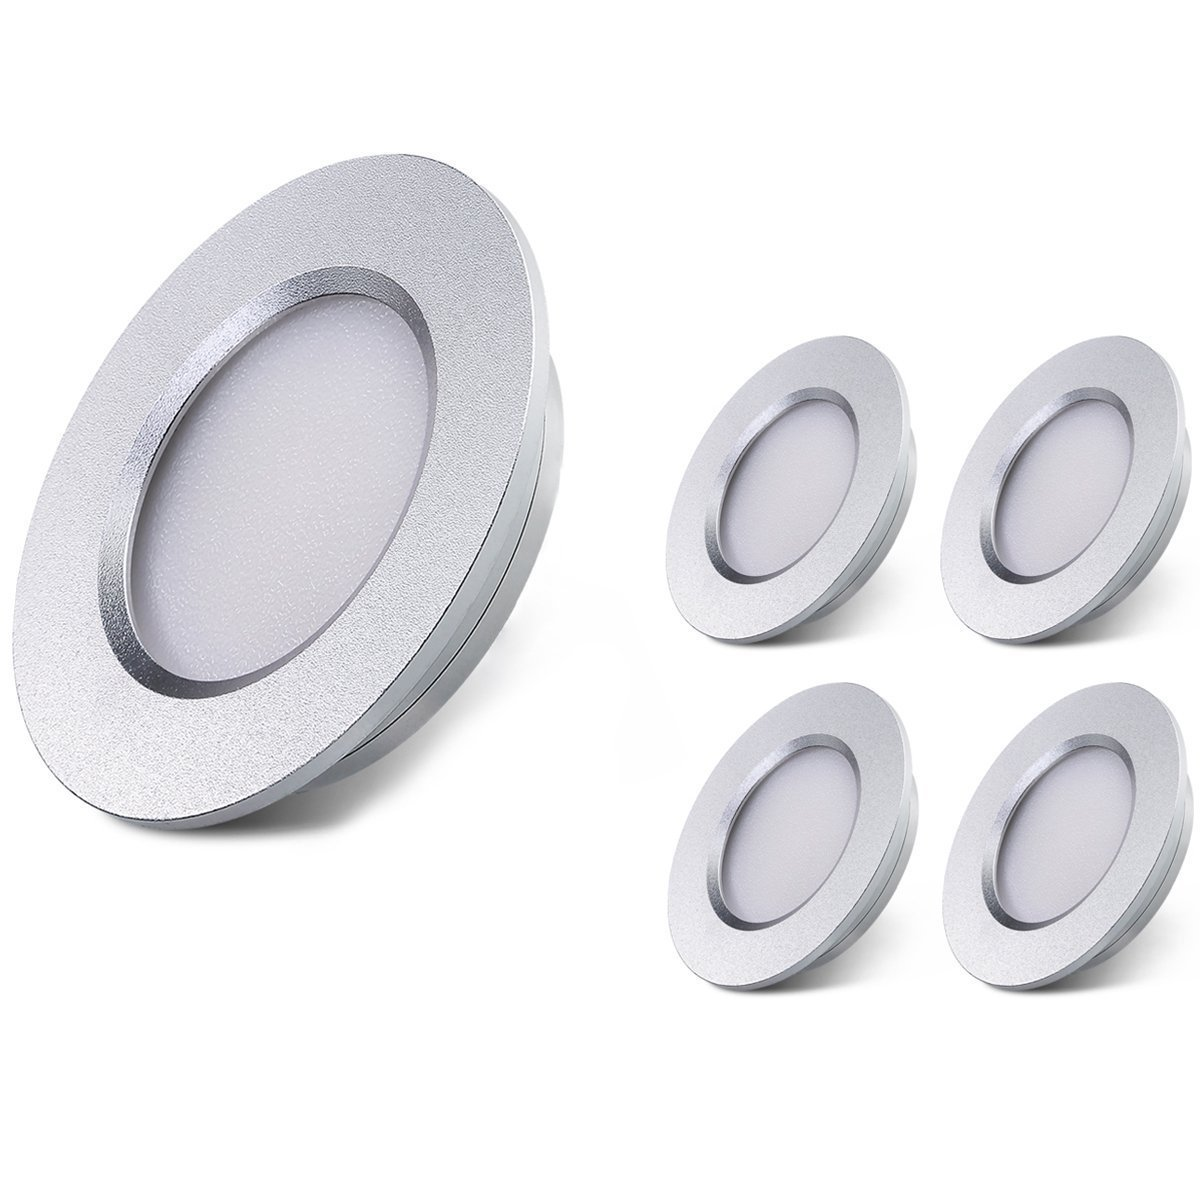 LED RV Boat Ceiling Light B-Right 12V LED Recessed Cabinet Lights Waterproof Ultra-Thin LED Interior Lighting for Motorhome Sailboat Yacht 3000K Warm White(4 Pack)